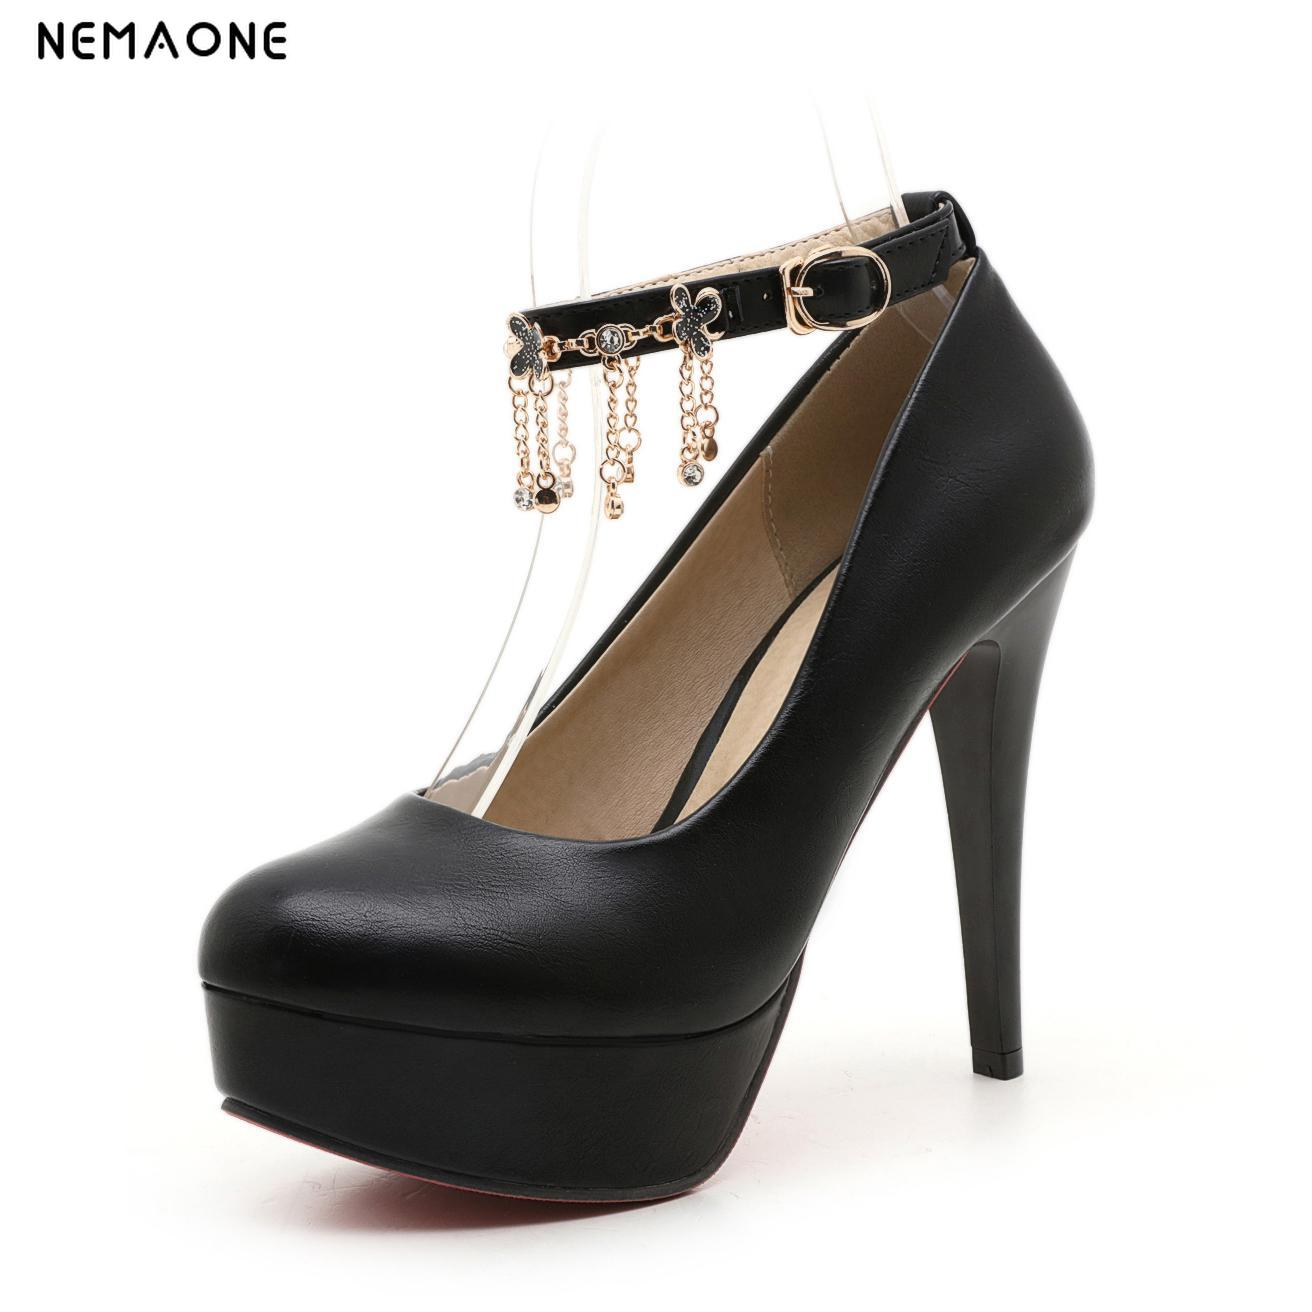 NEMAONE Women Super High Heels Decor Sexy Party Pumps 2017 Spring Thin Heel buckle Round Toe Lady Platform Shoes cicime women s heels thin heel spikes heels solid slip on wedding fashion leisure casual party dressing high heel platform pumps